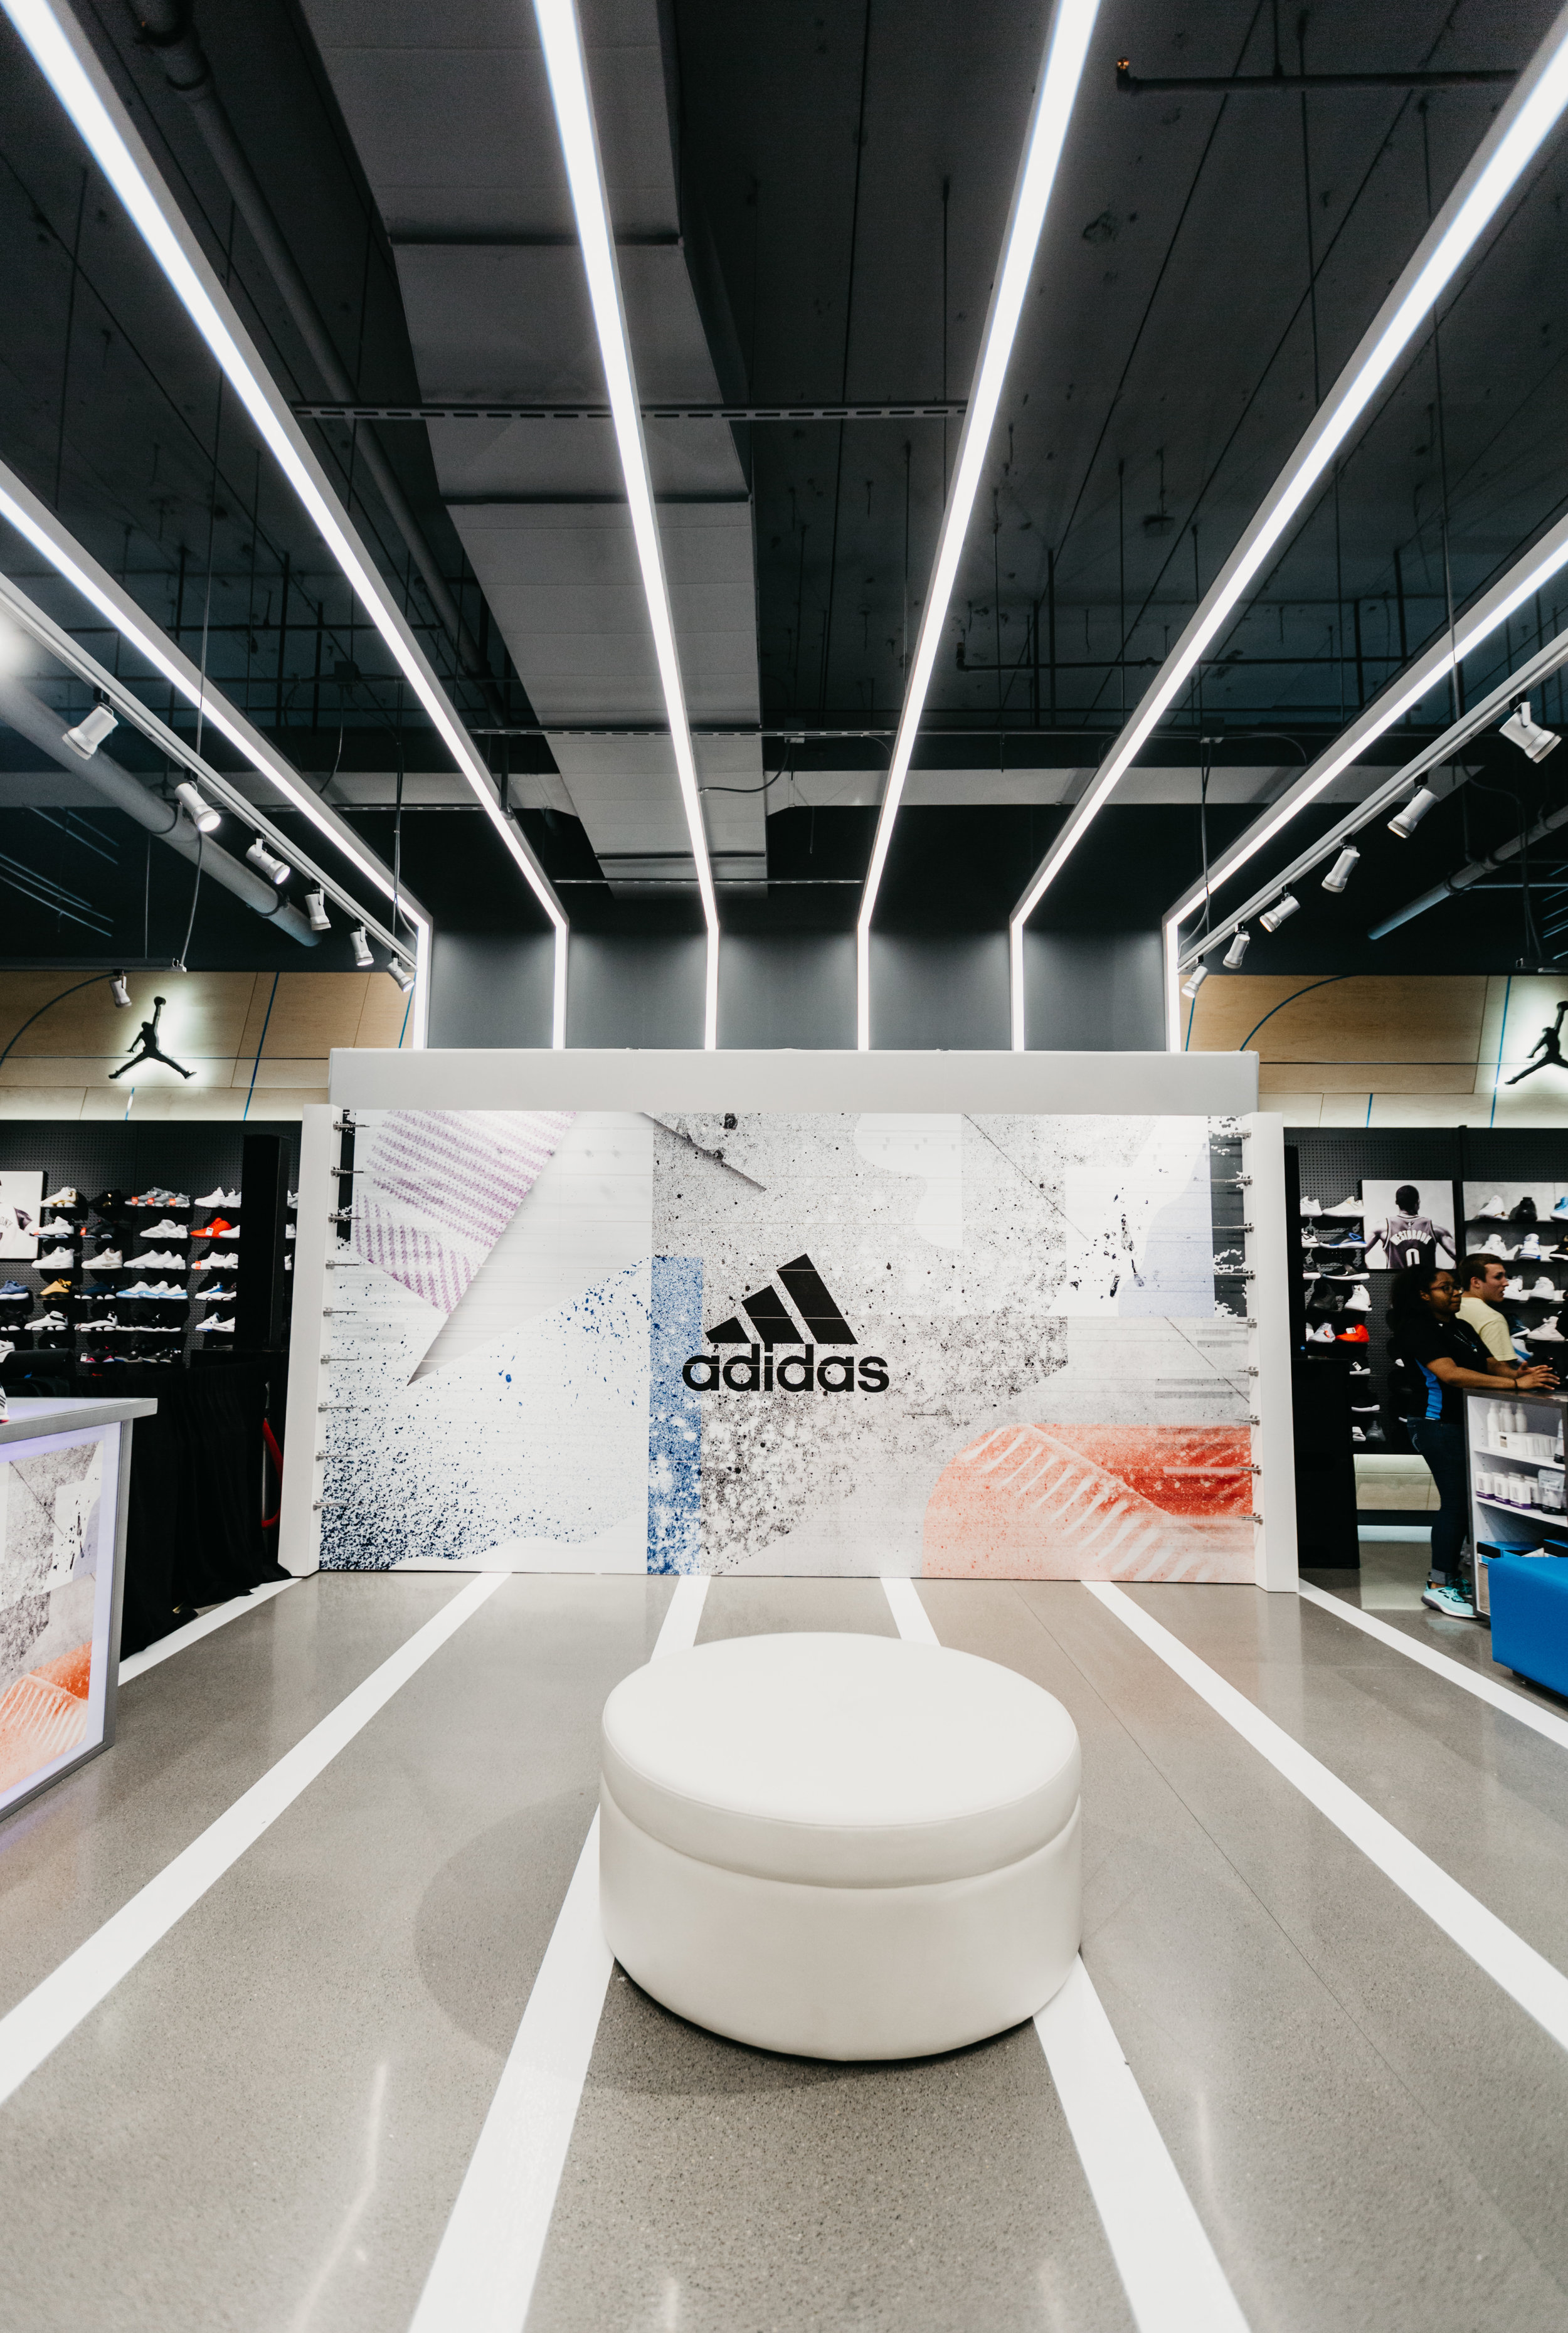 adidas store on line